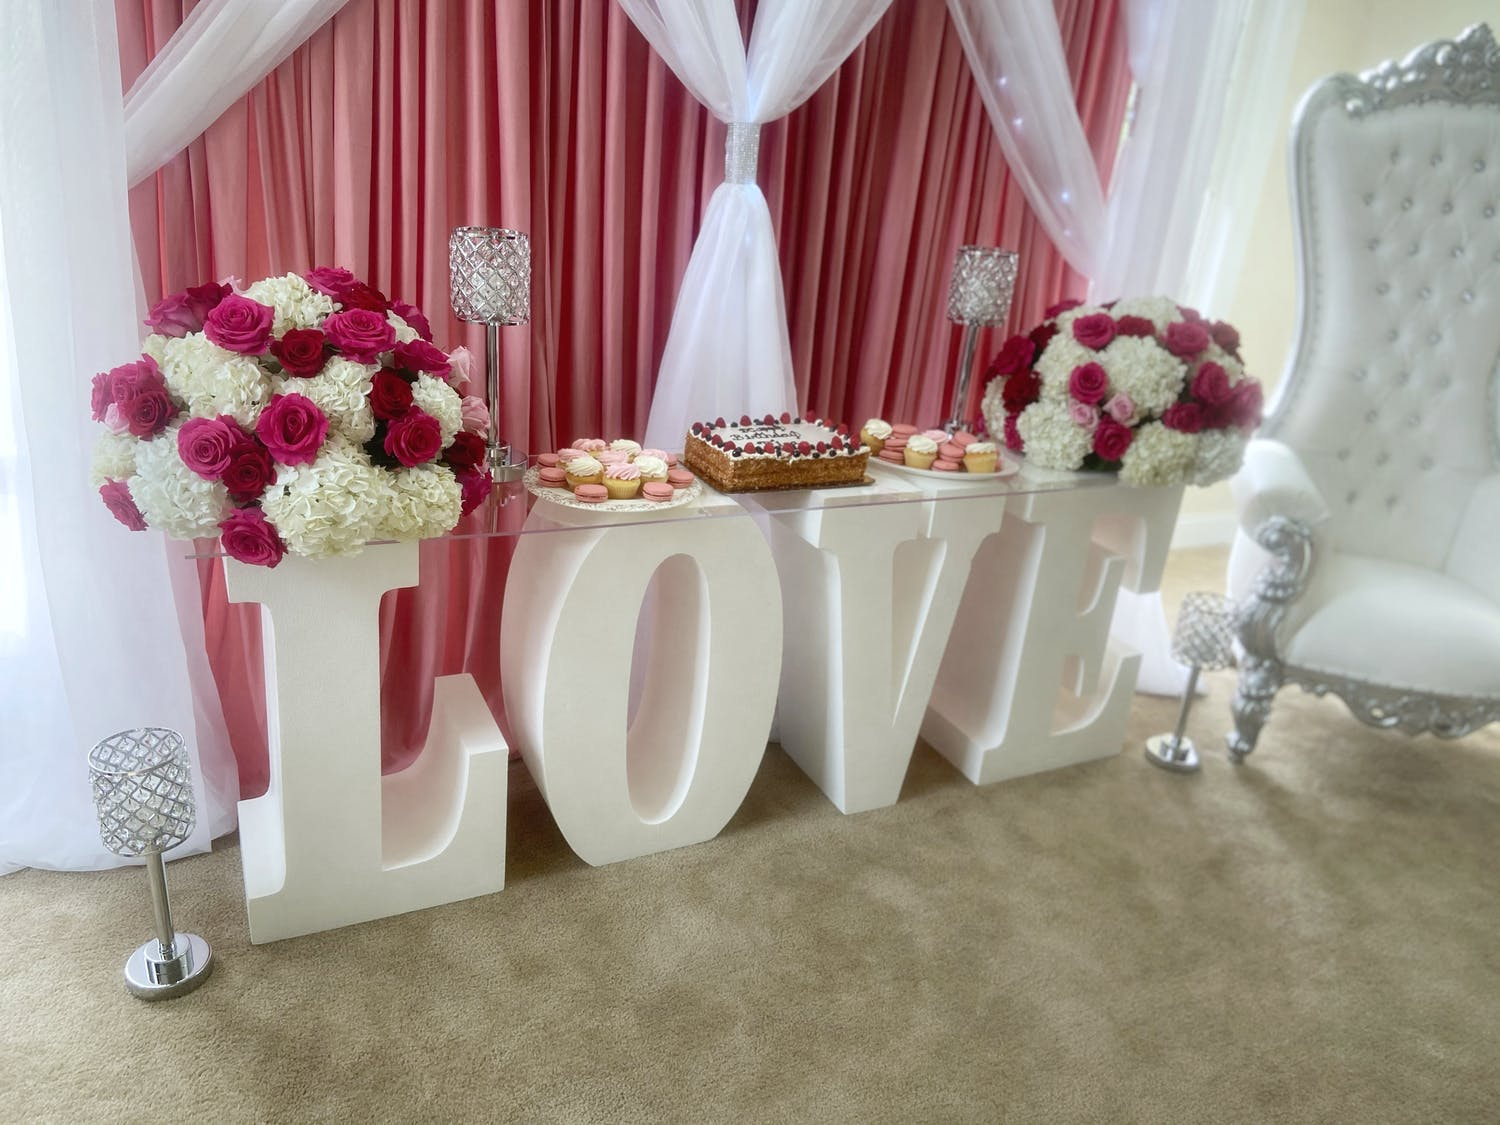 Birthday Dessert Station Laid Out on White Block Letters Spelling Out Love | PartySlate